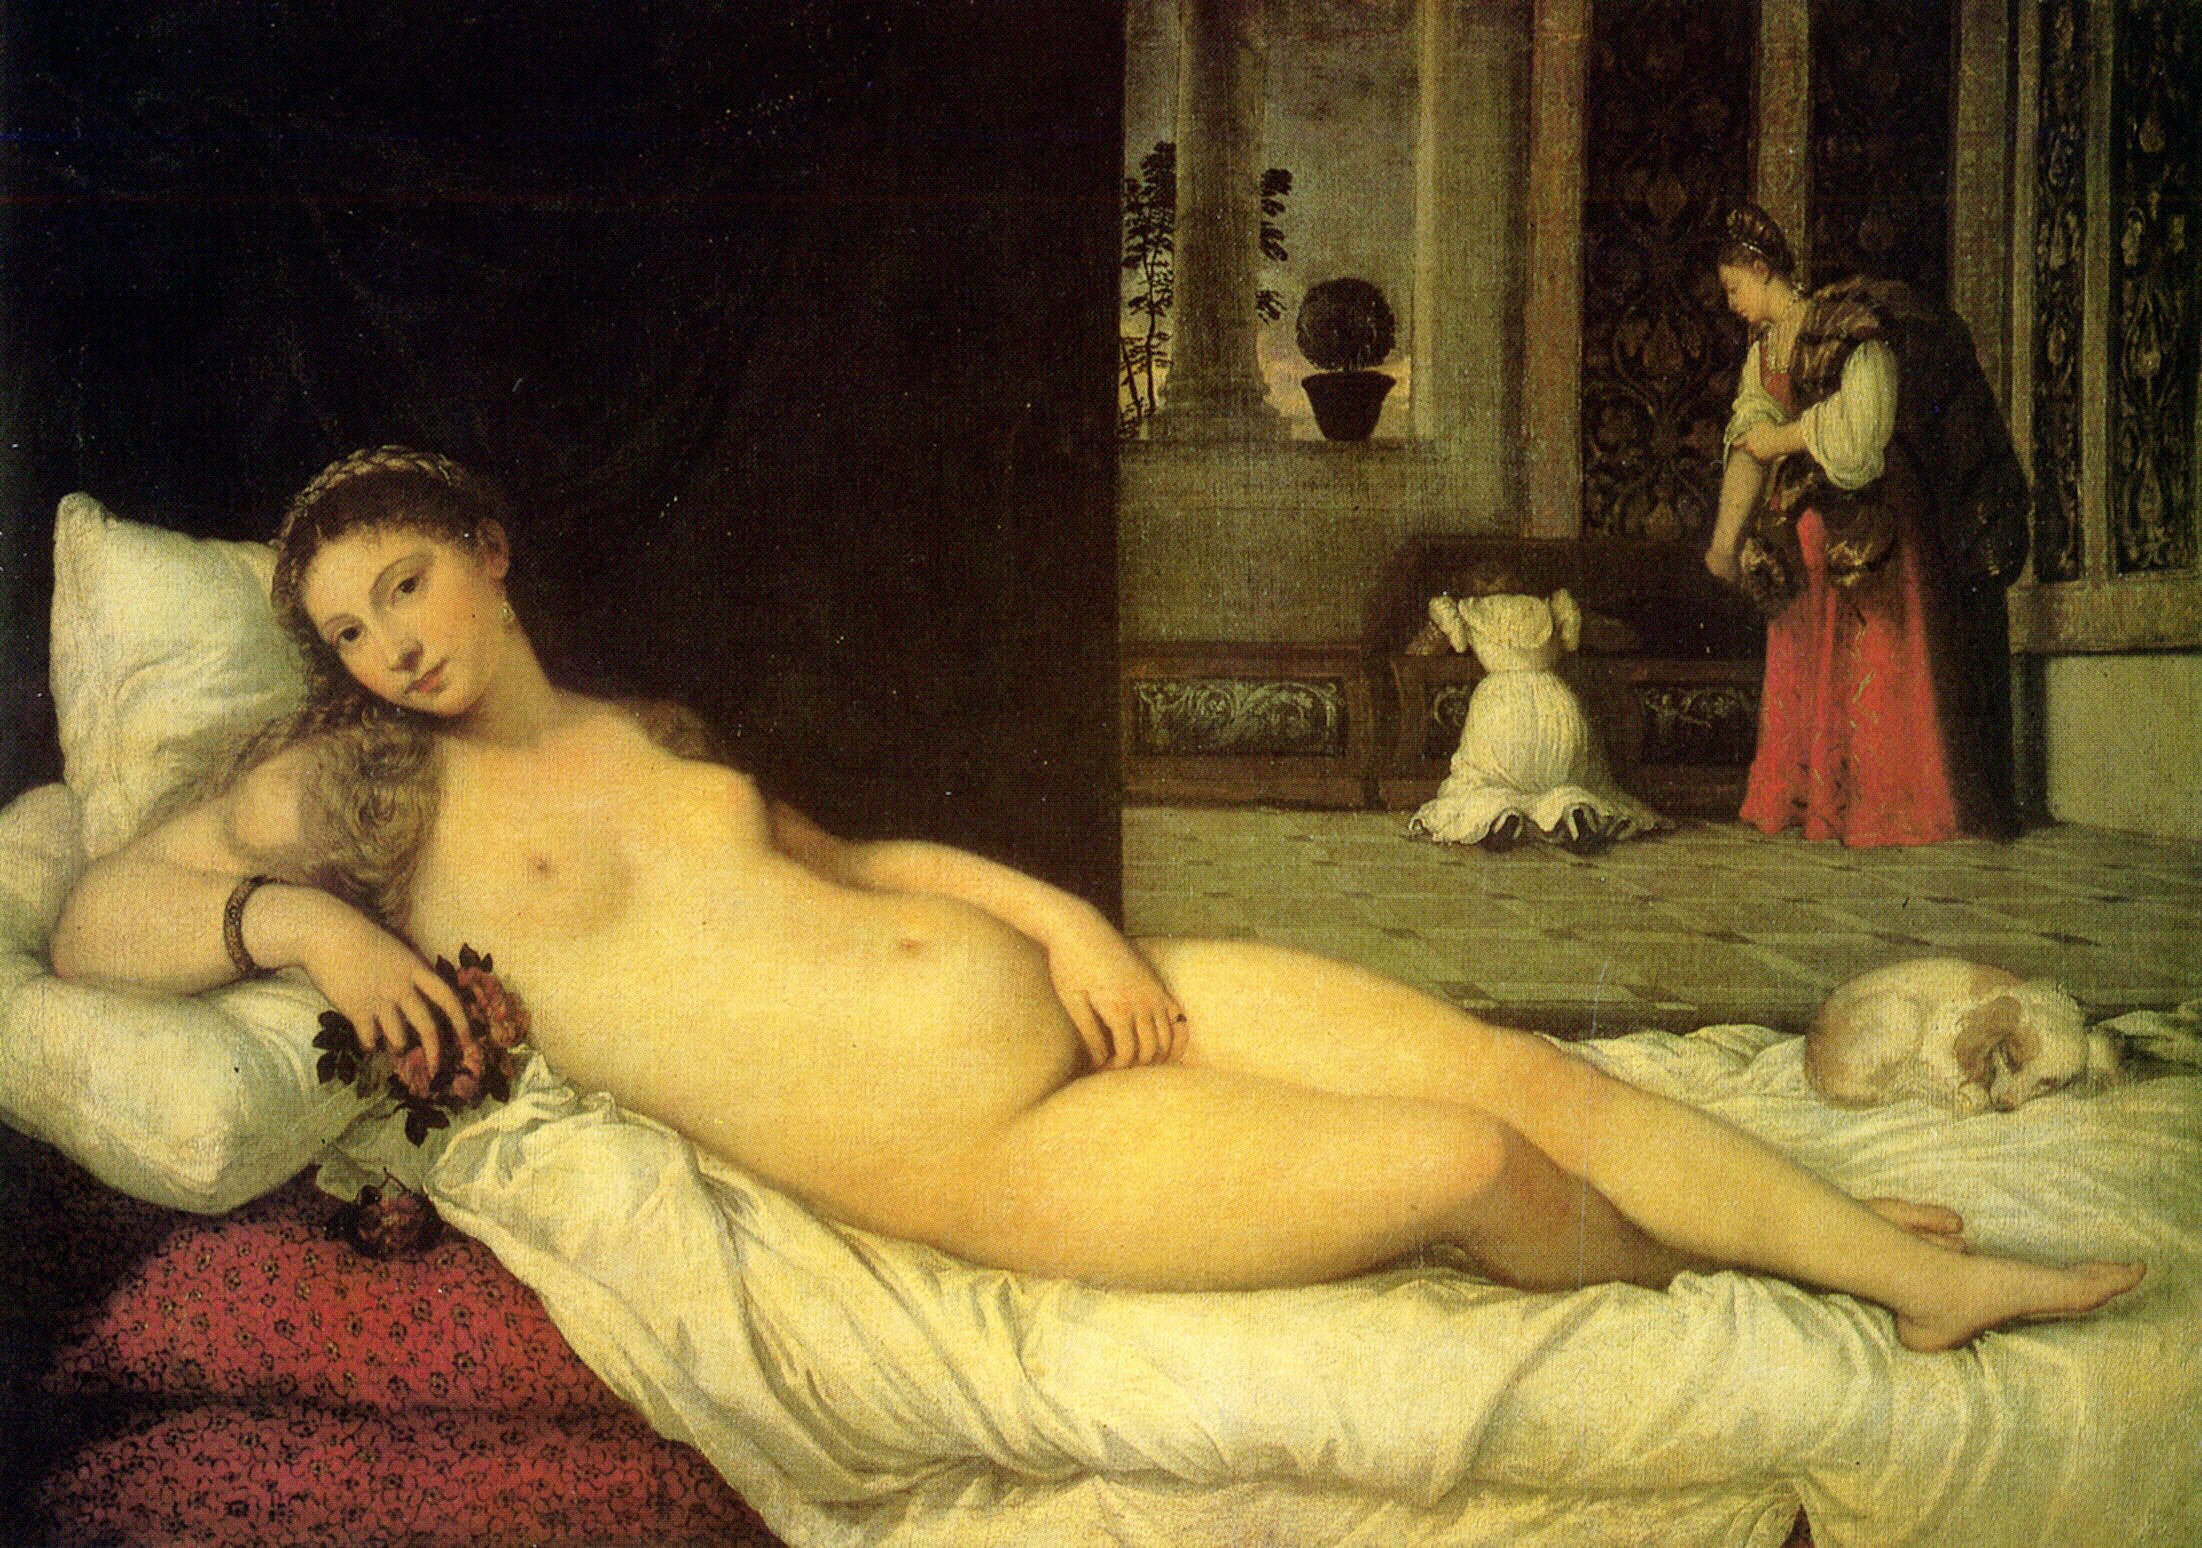 Titian, The Venus of Urbino 1538